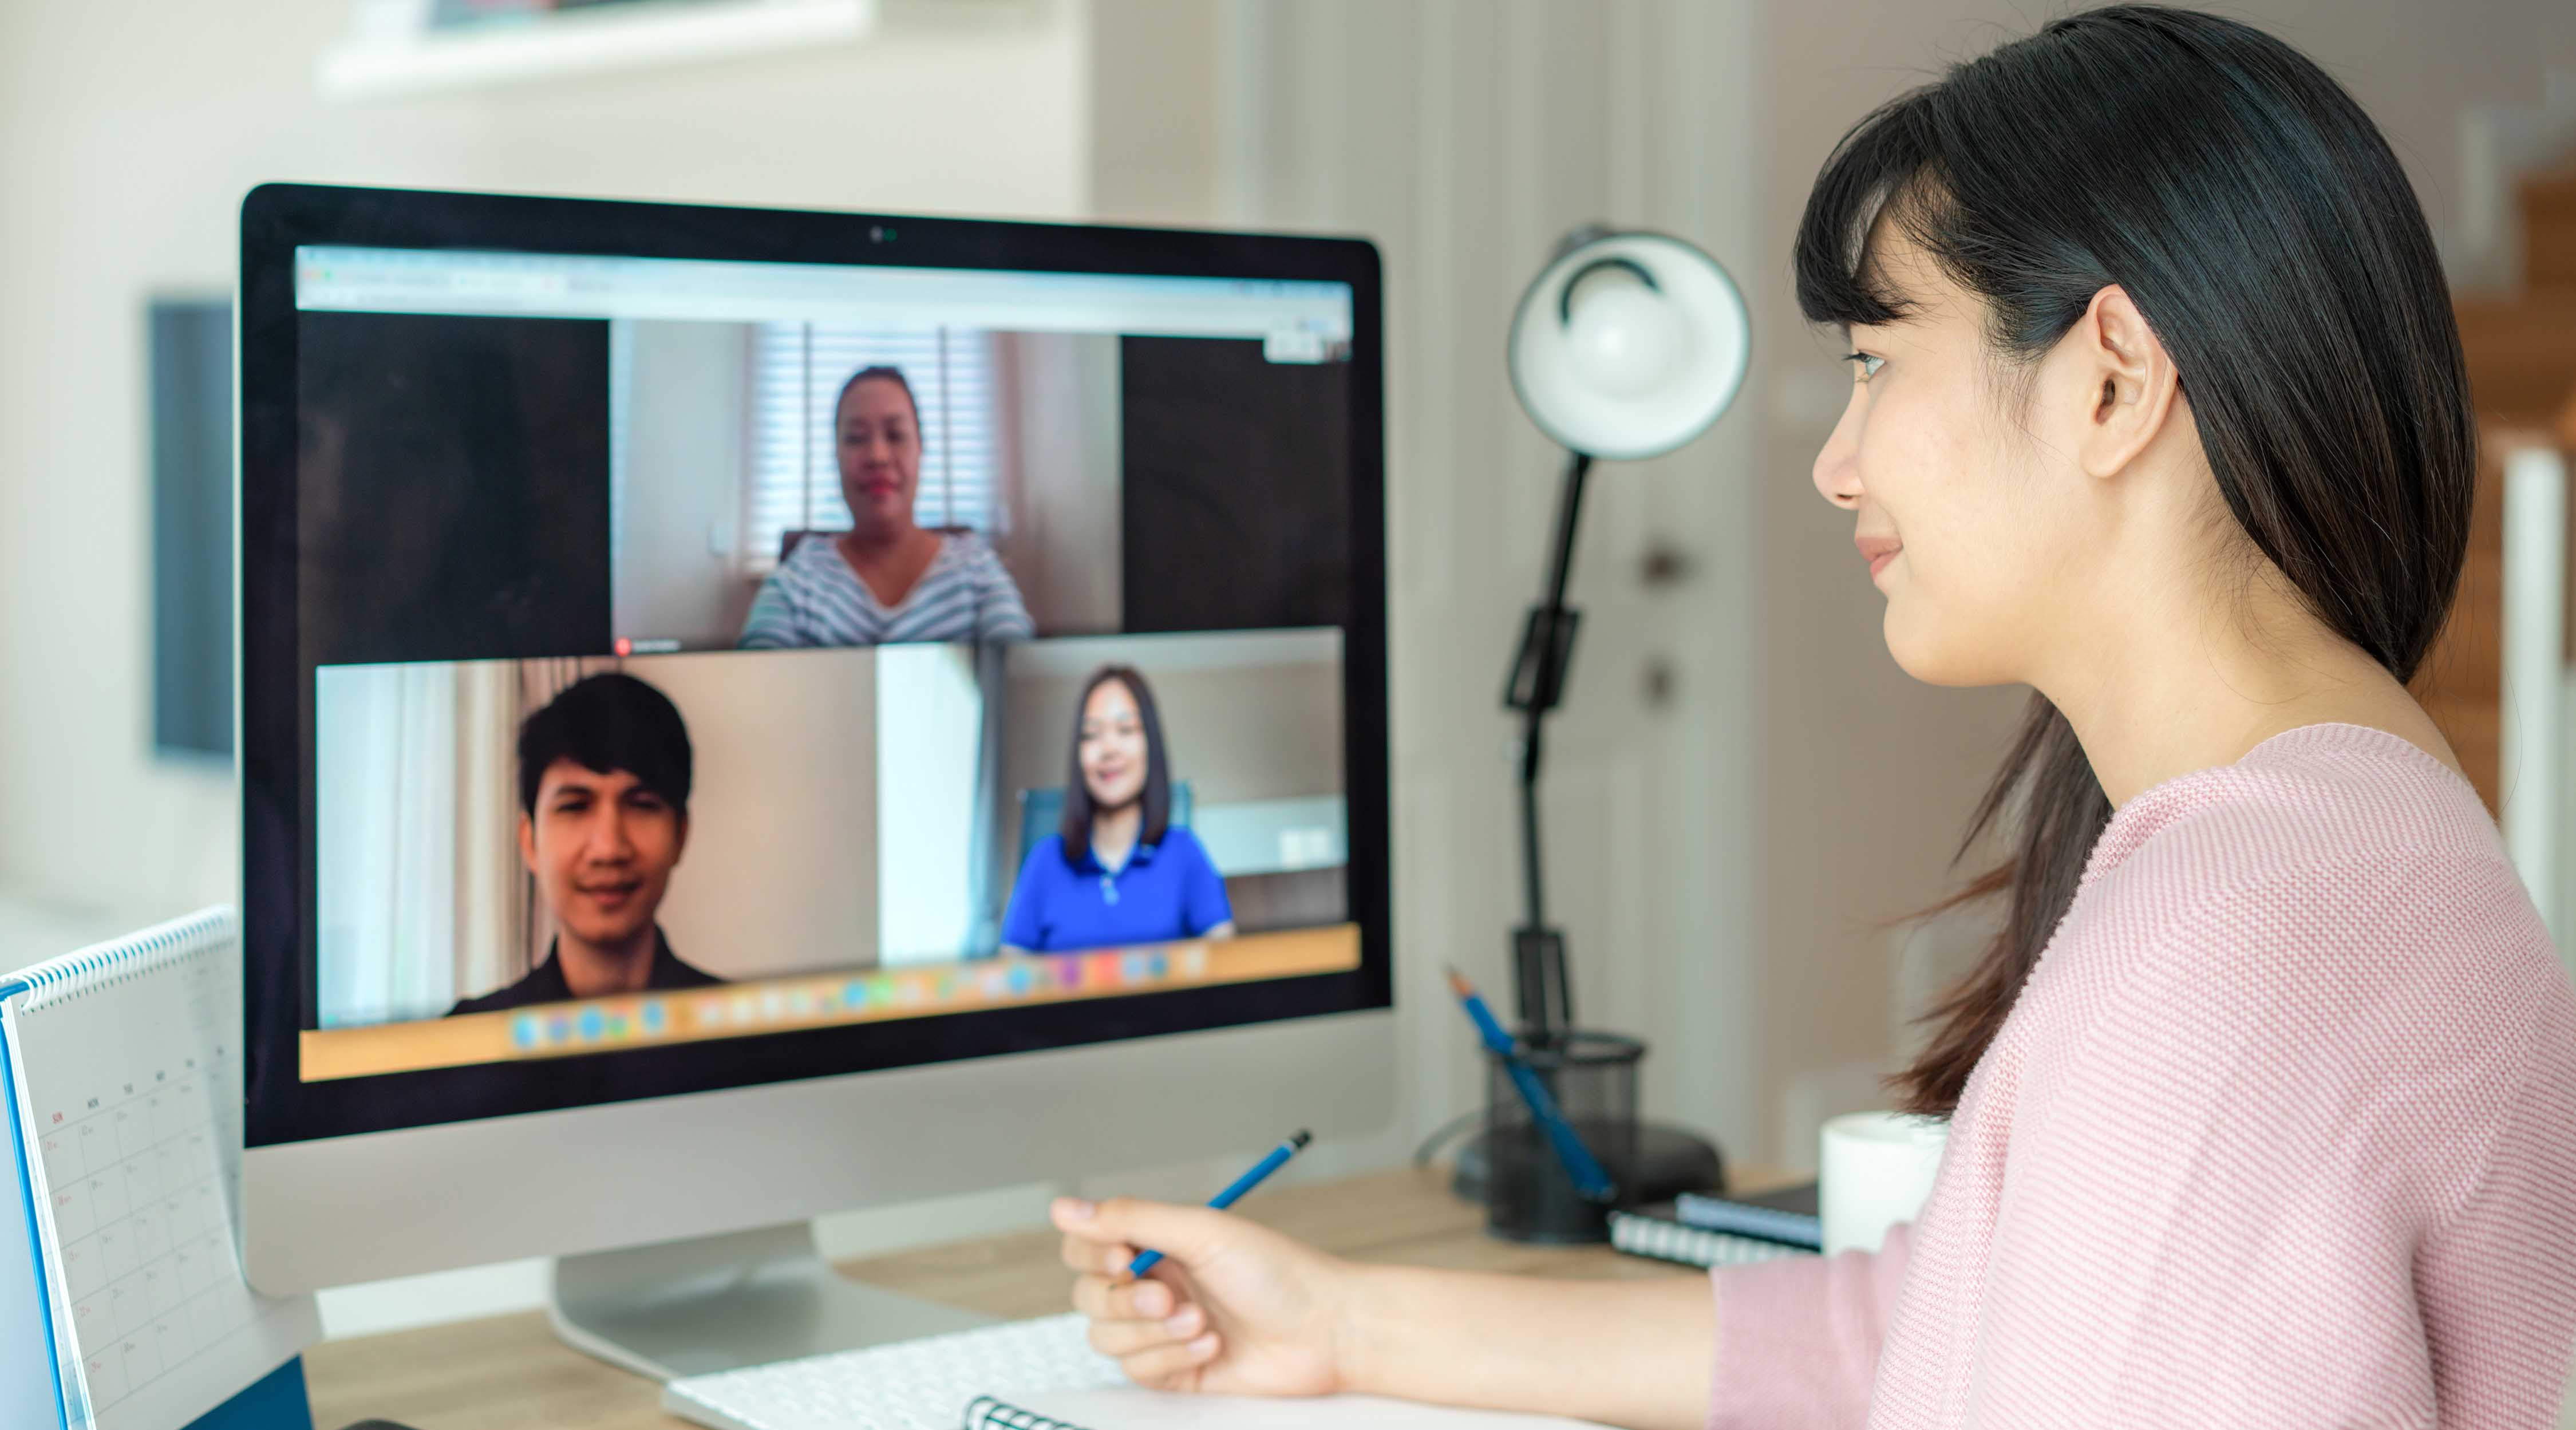 A woman leads a meeting over video chat.